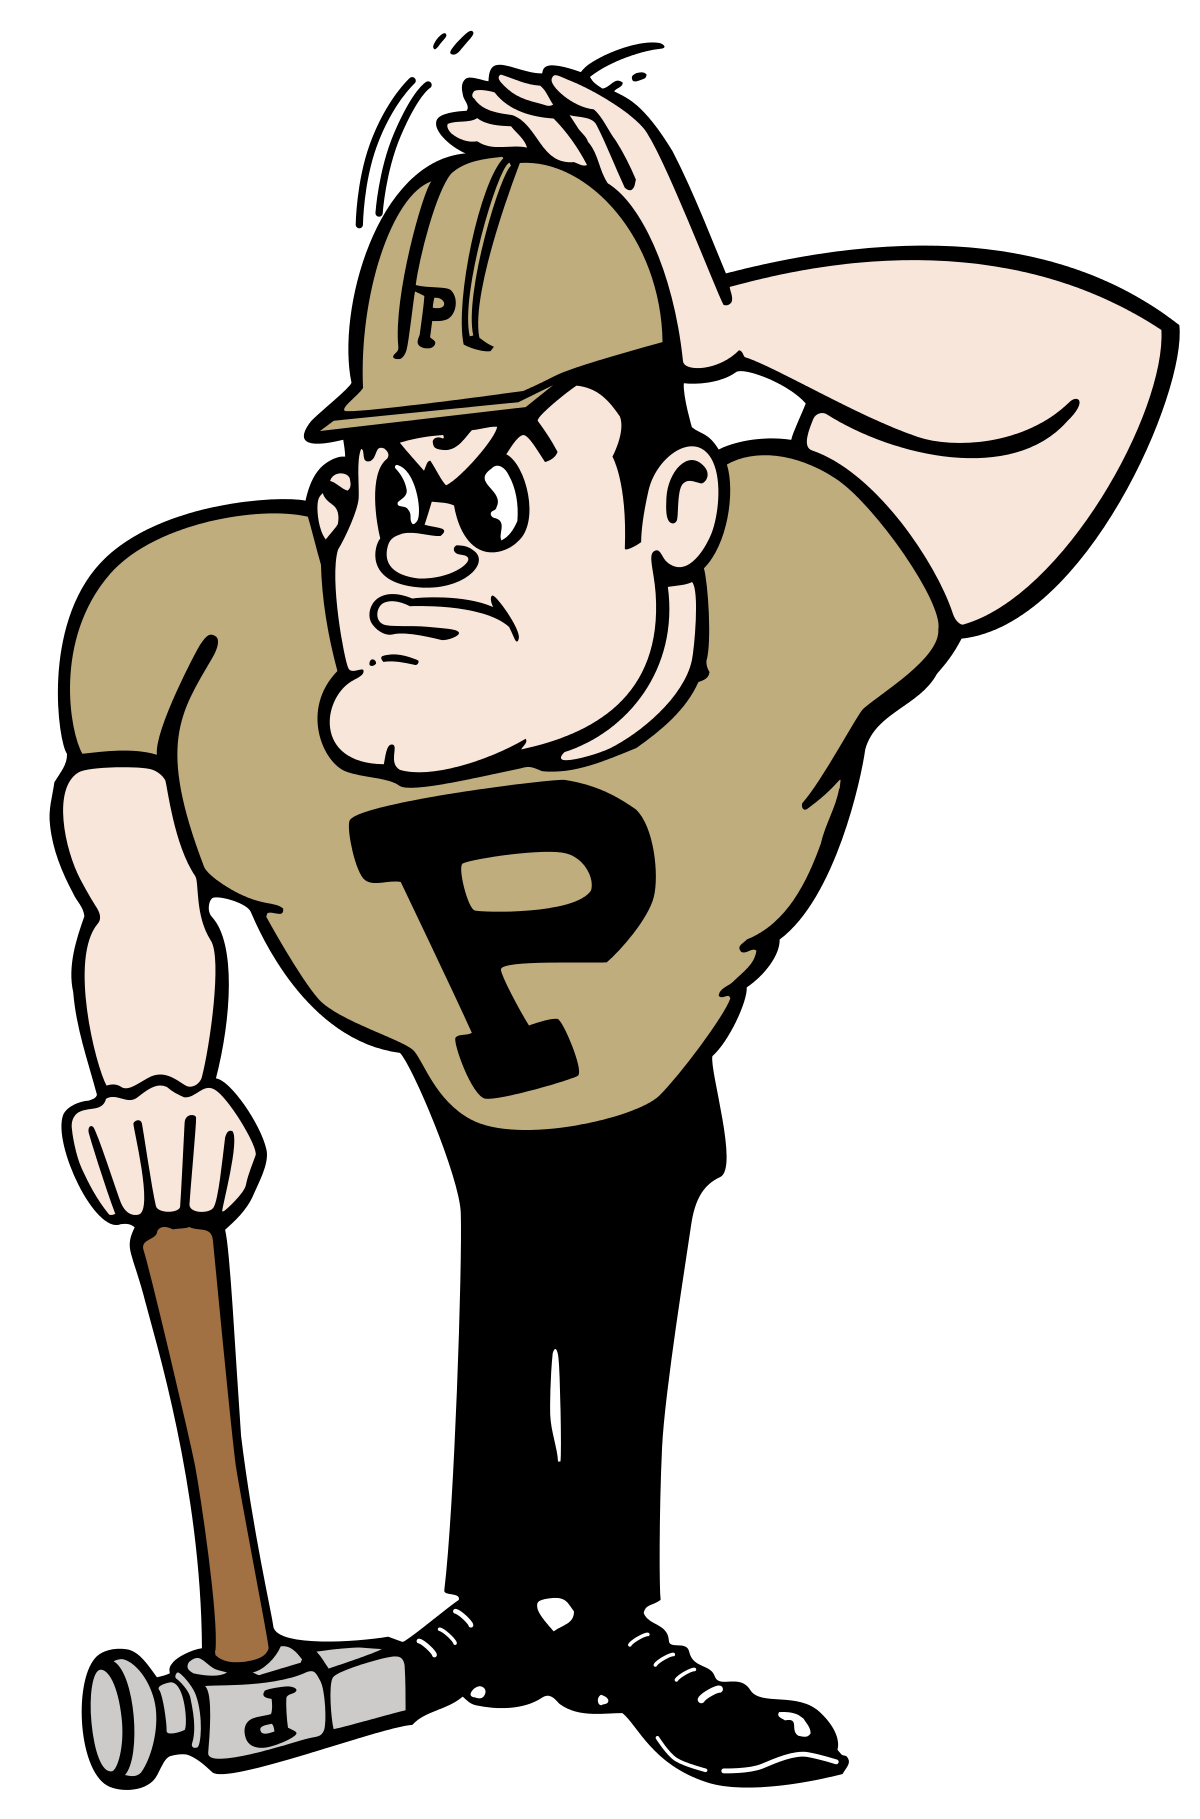 clipart free download Purdue wikipedia . Pete the clipart